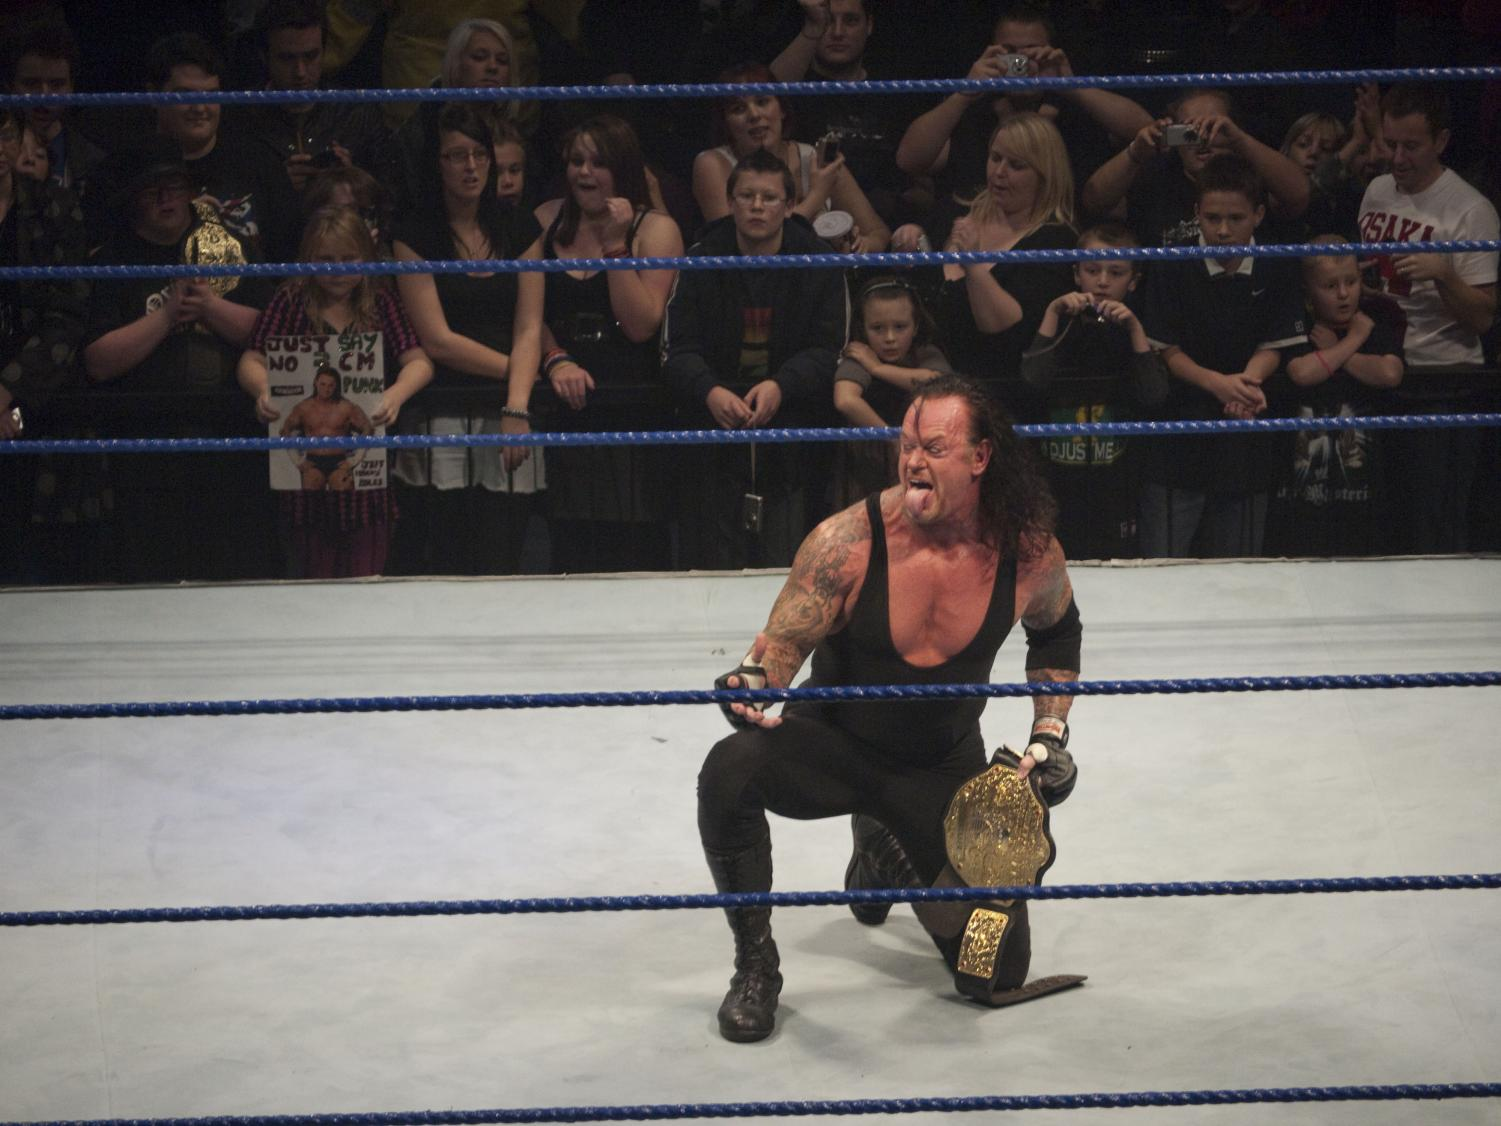 The Undertaker at SmackDown 2009. The Undertaker had a winning streak during his first 21 WrestleMania events. Columnist Noah explains the pointlessness of The Undertaker continuing his career after his winning streak is broken.